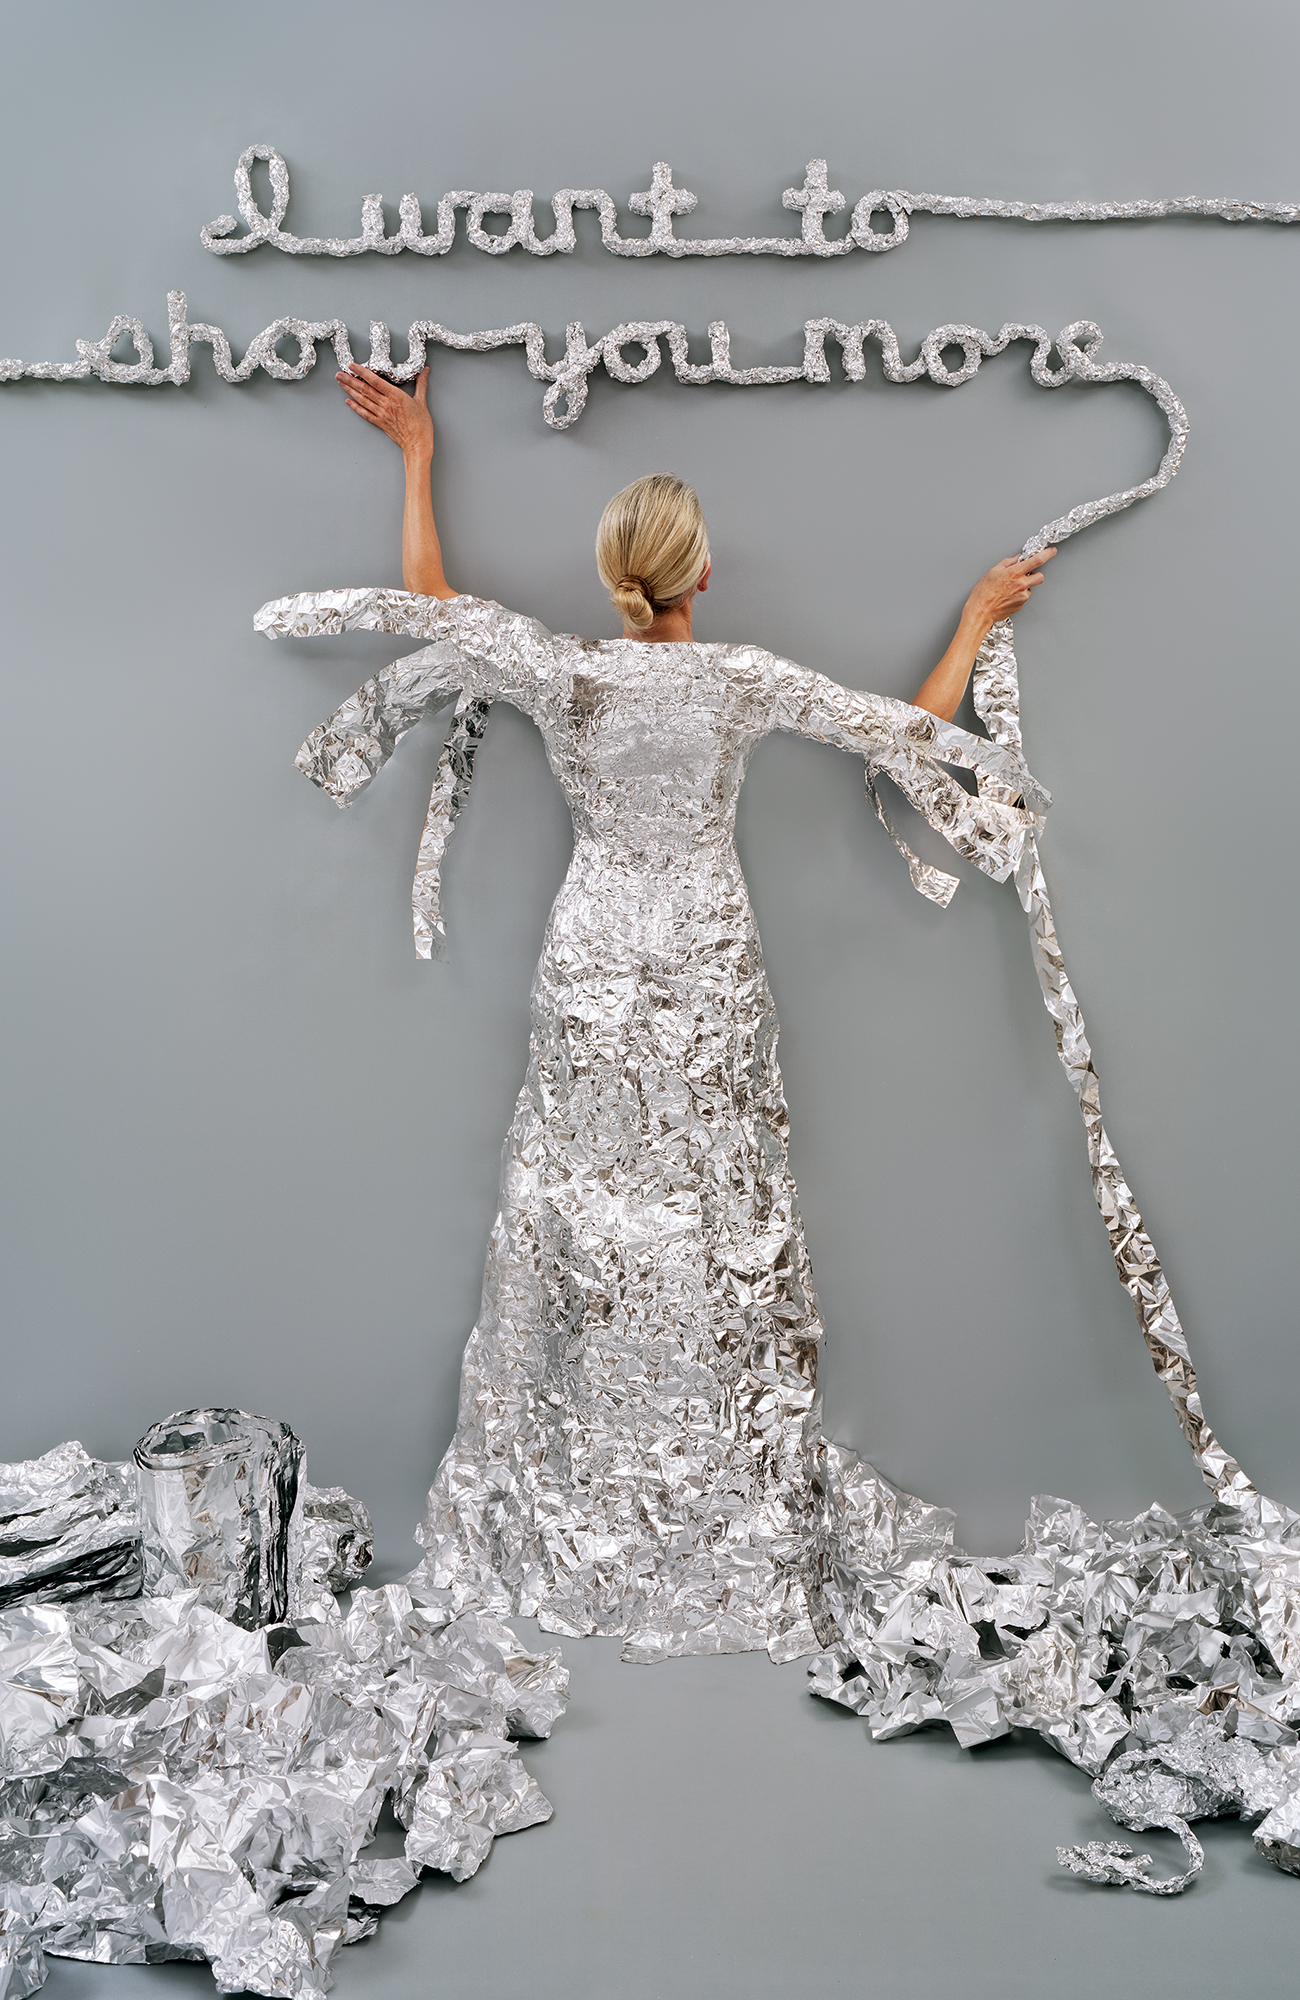 Lost in my Life (tin foil), 2012